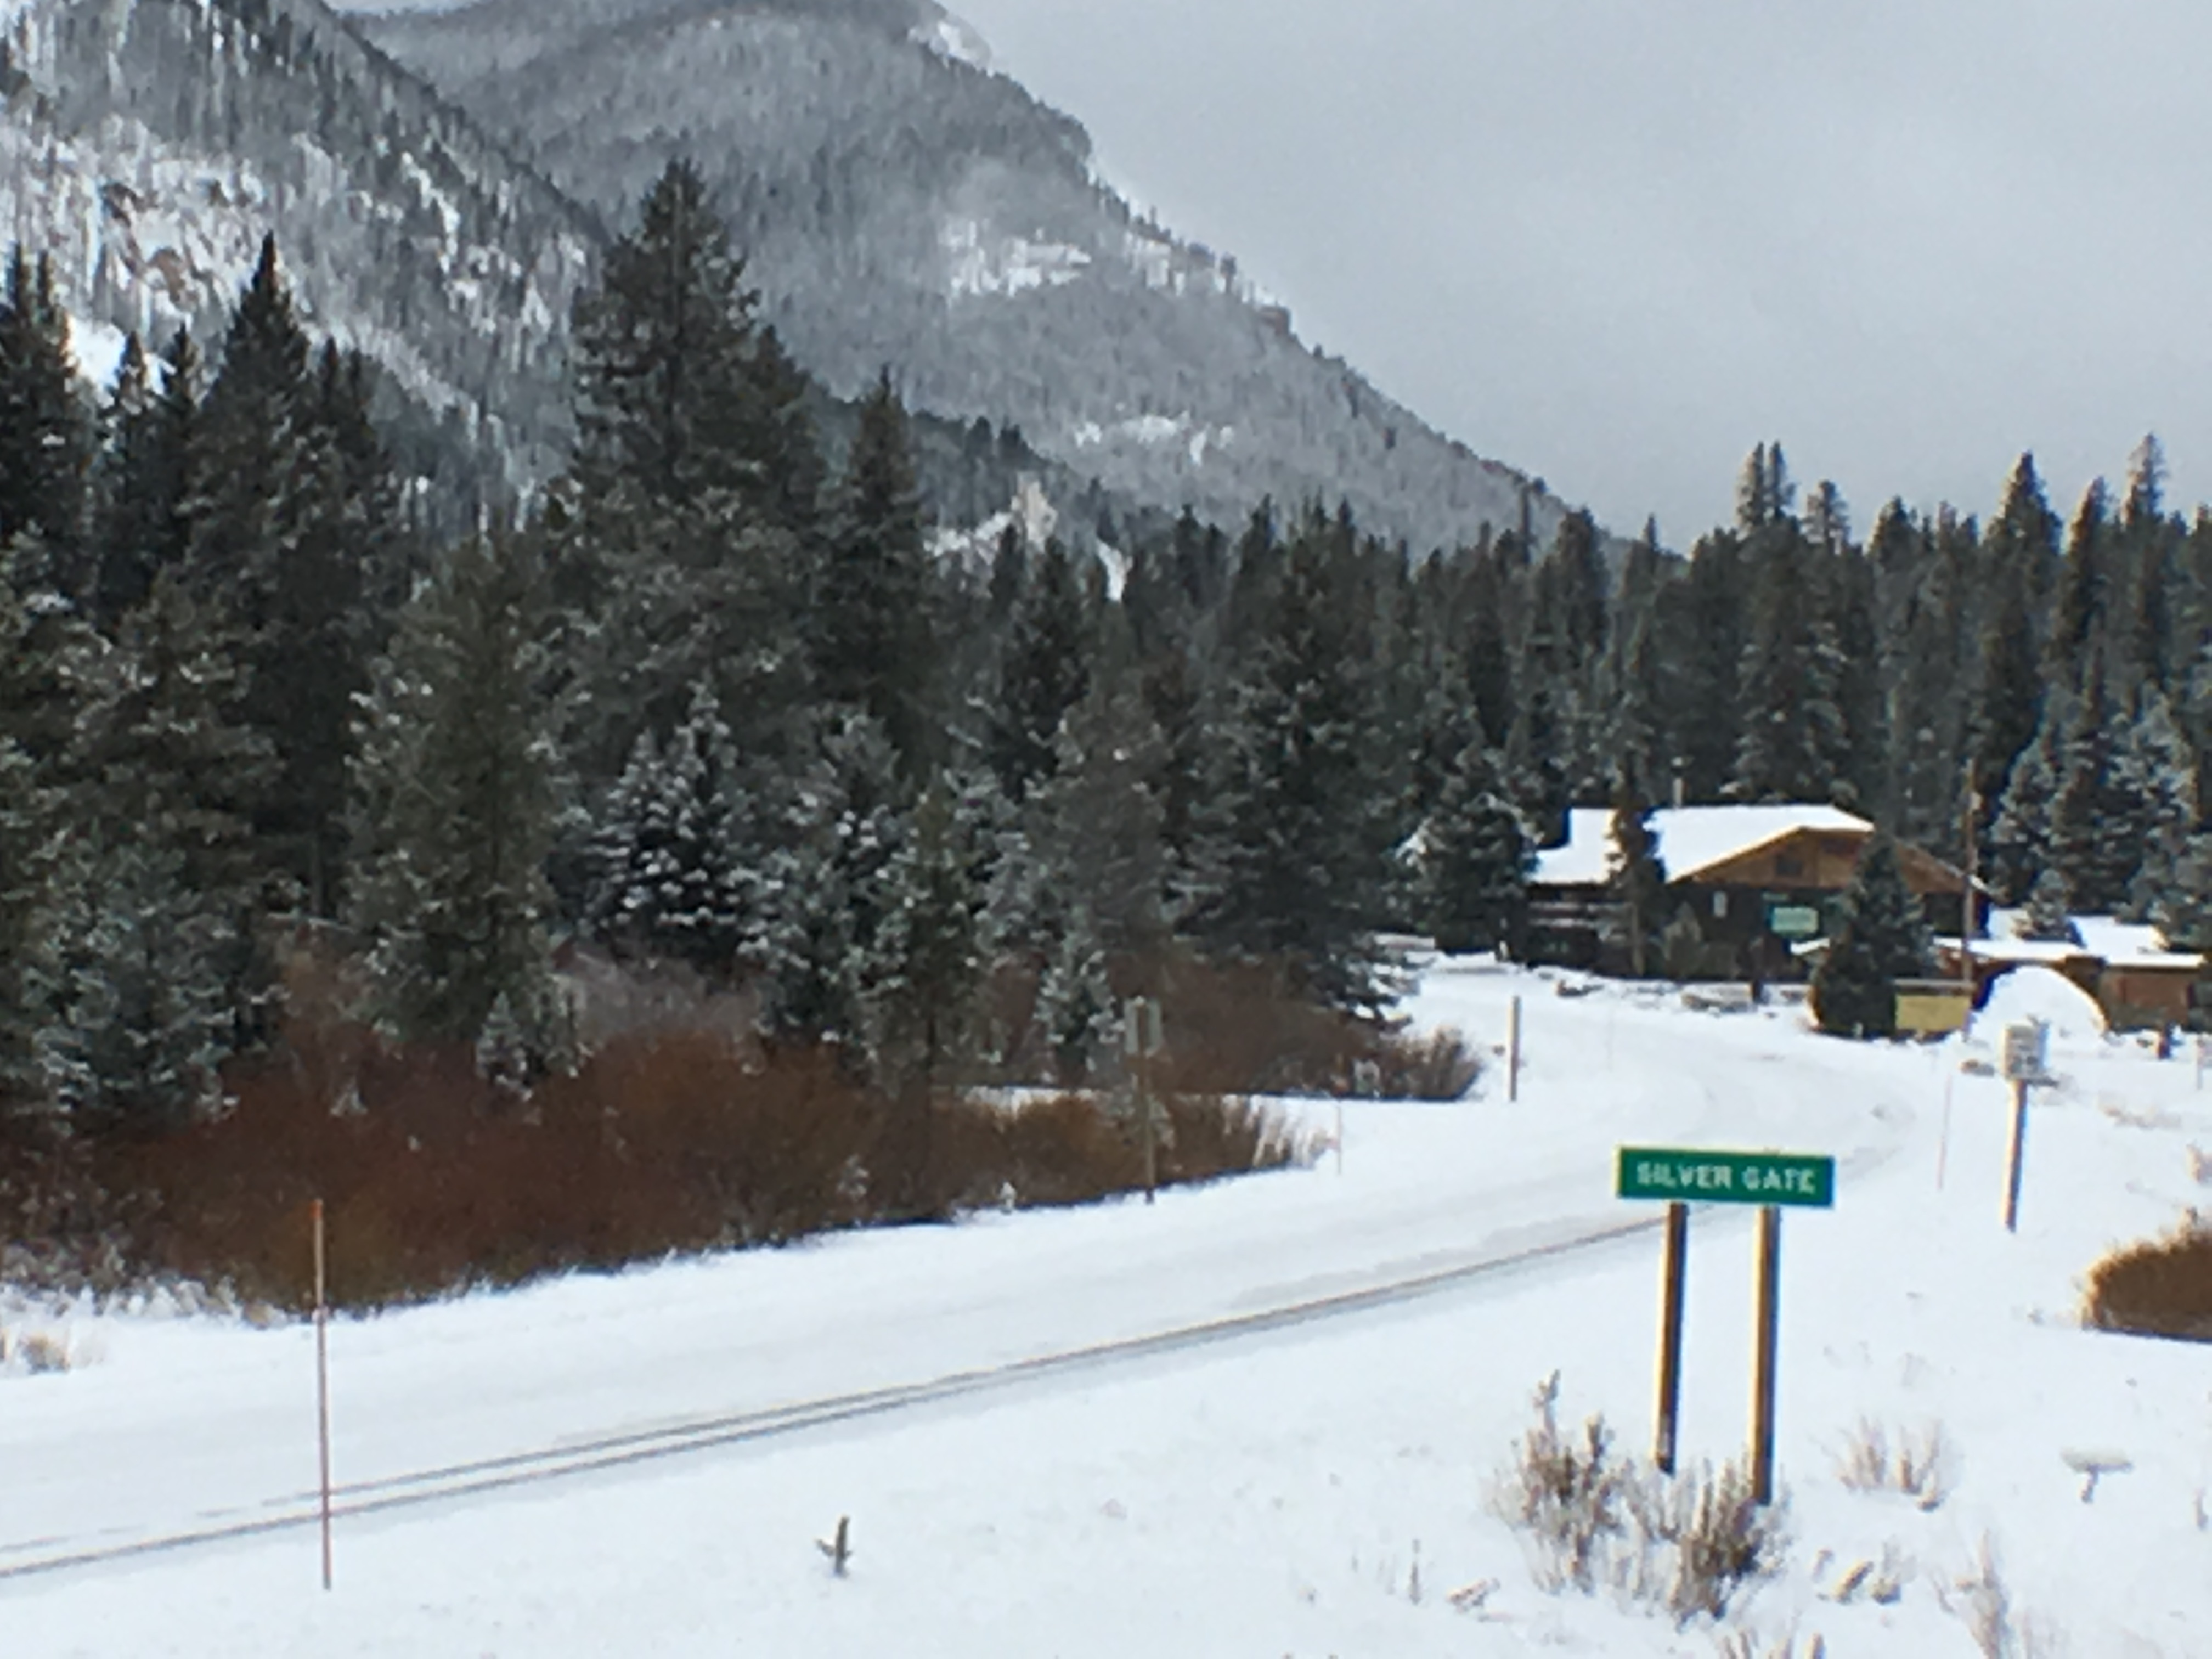 Entrance to Silver Gate and cabins near yellowstone